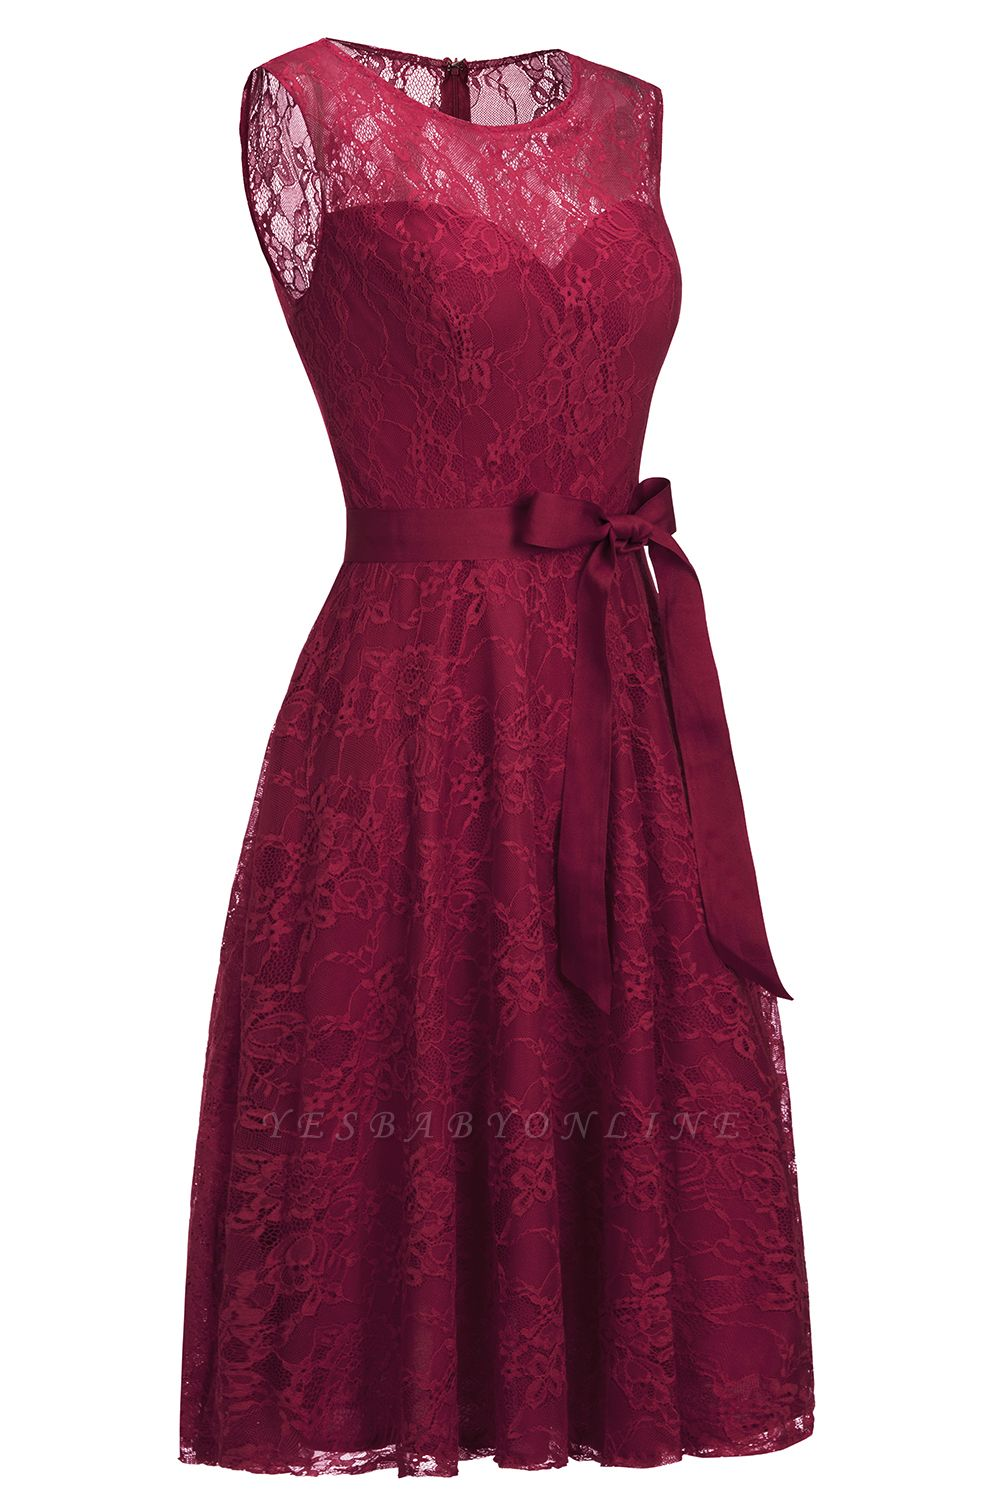 Cheap A-line Sleeveless Burgundy Lace Dress with Bow in Stock